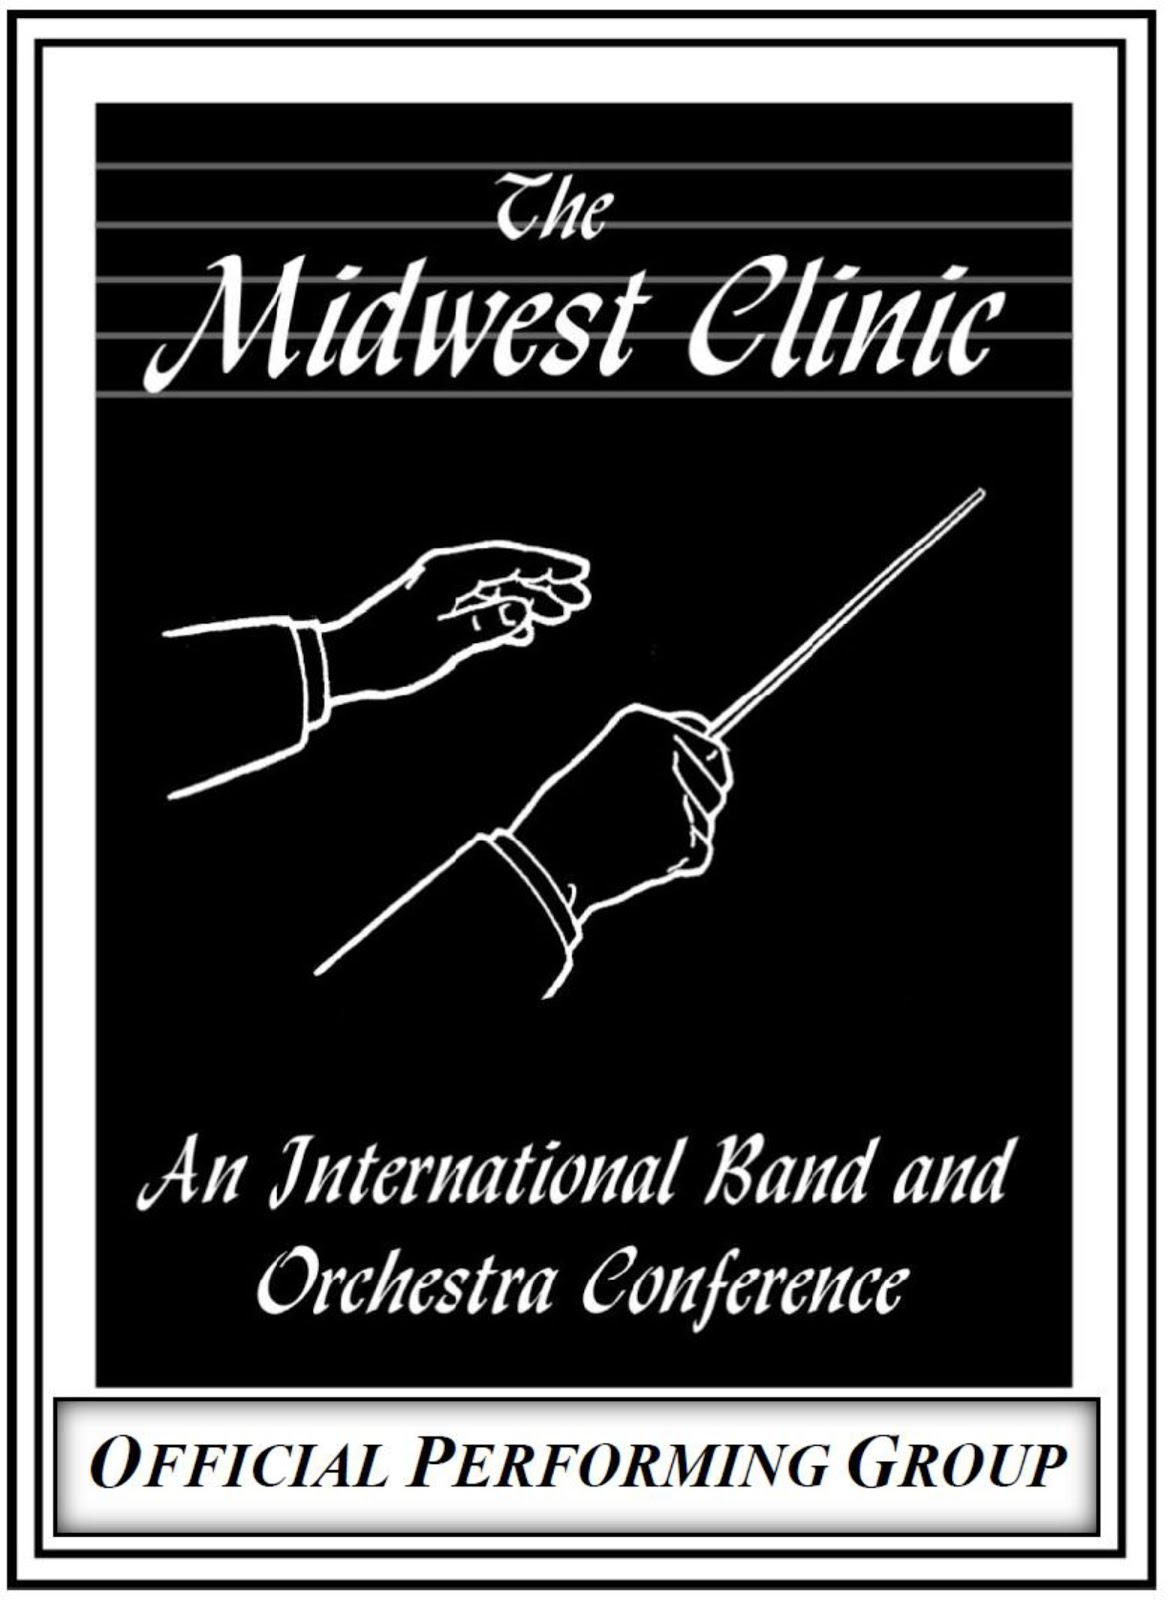 The 71st Annual Midwest Clinic